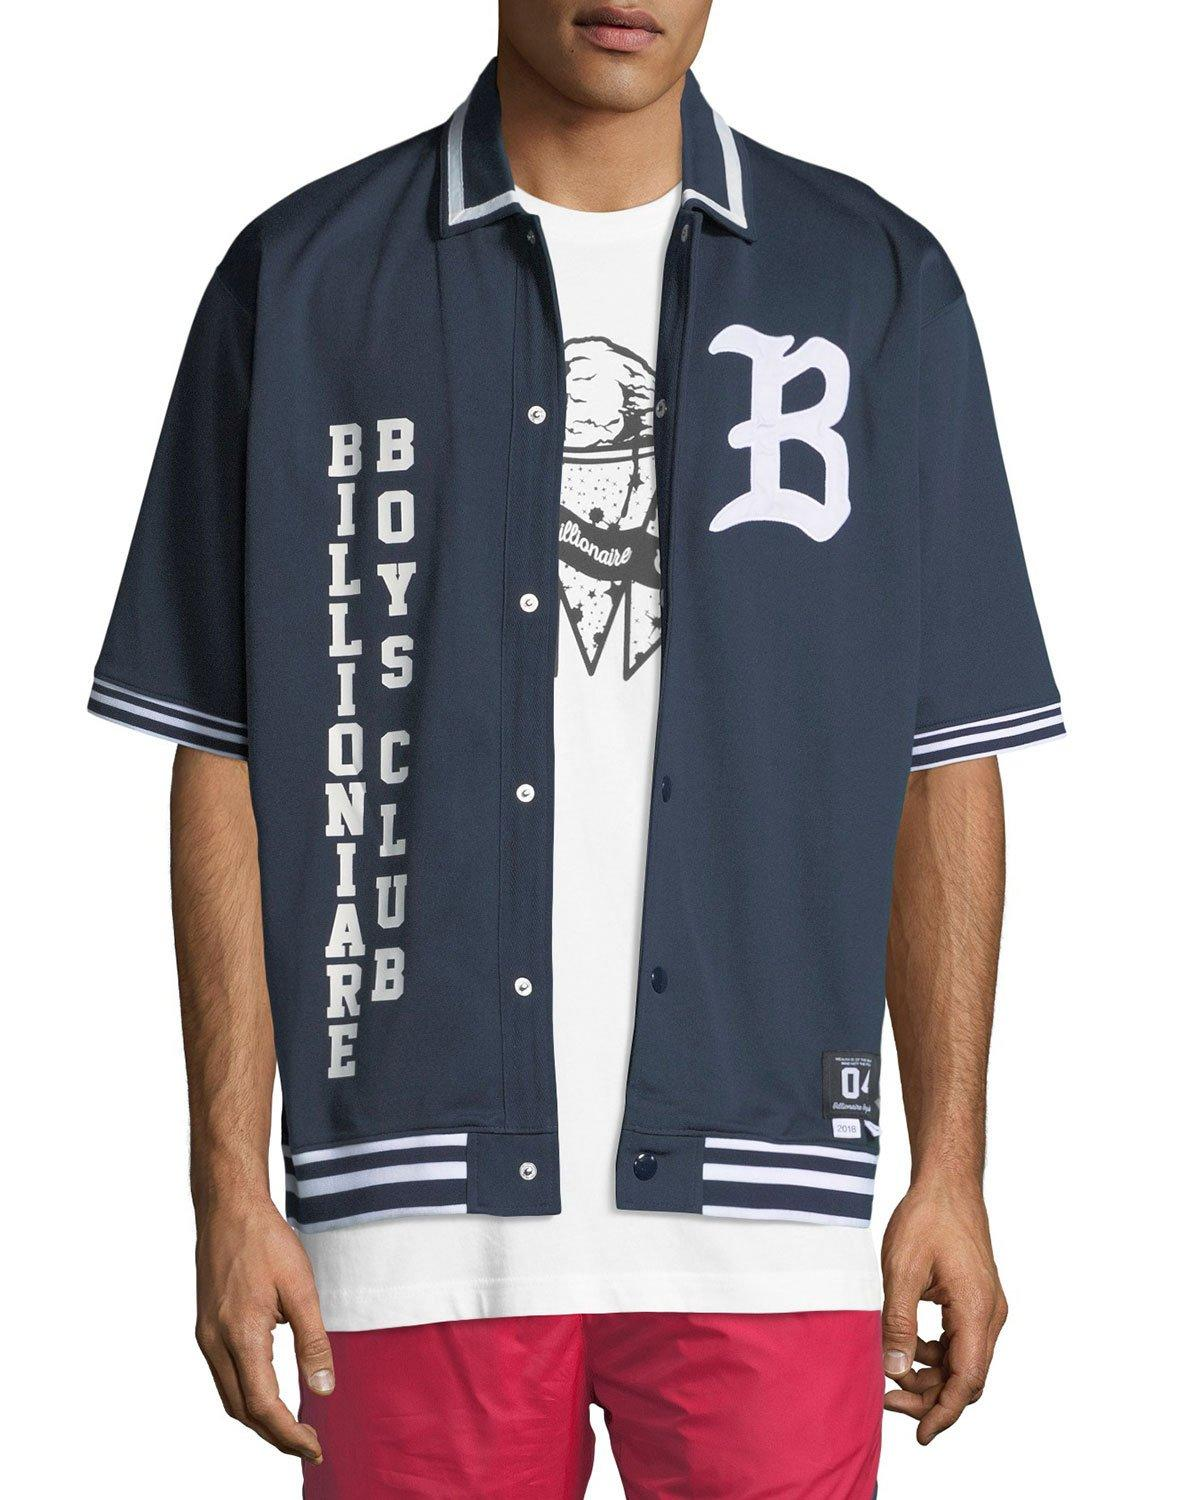 5a266c9b8d Billionaire Boys Club Men's Marquee Short-Sleeve Knit Shirt In Navy. MEMBER  ONLY